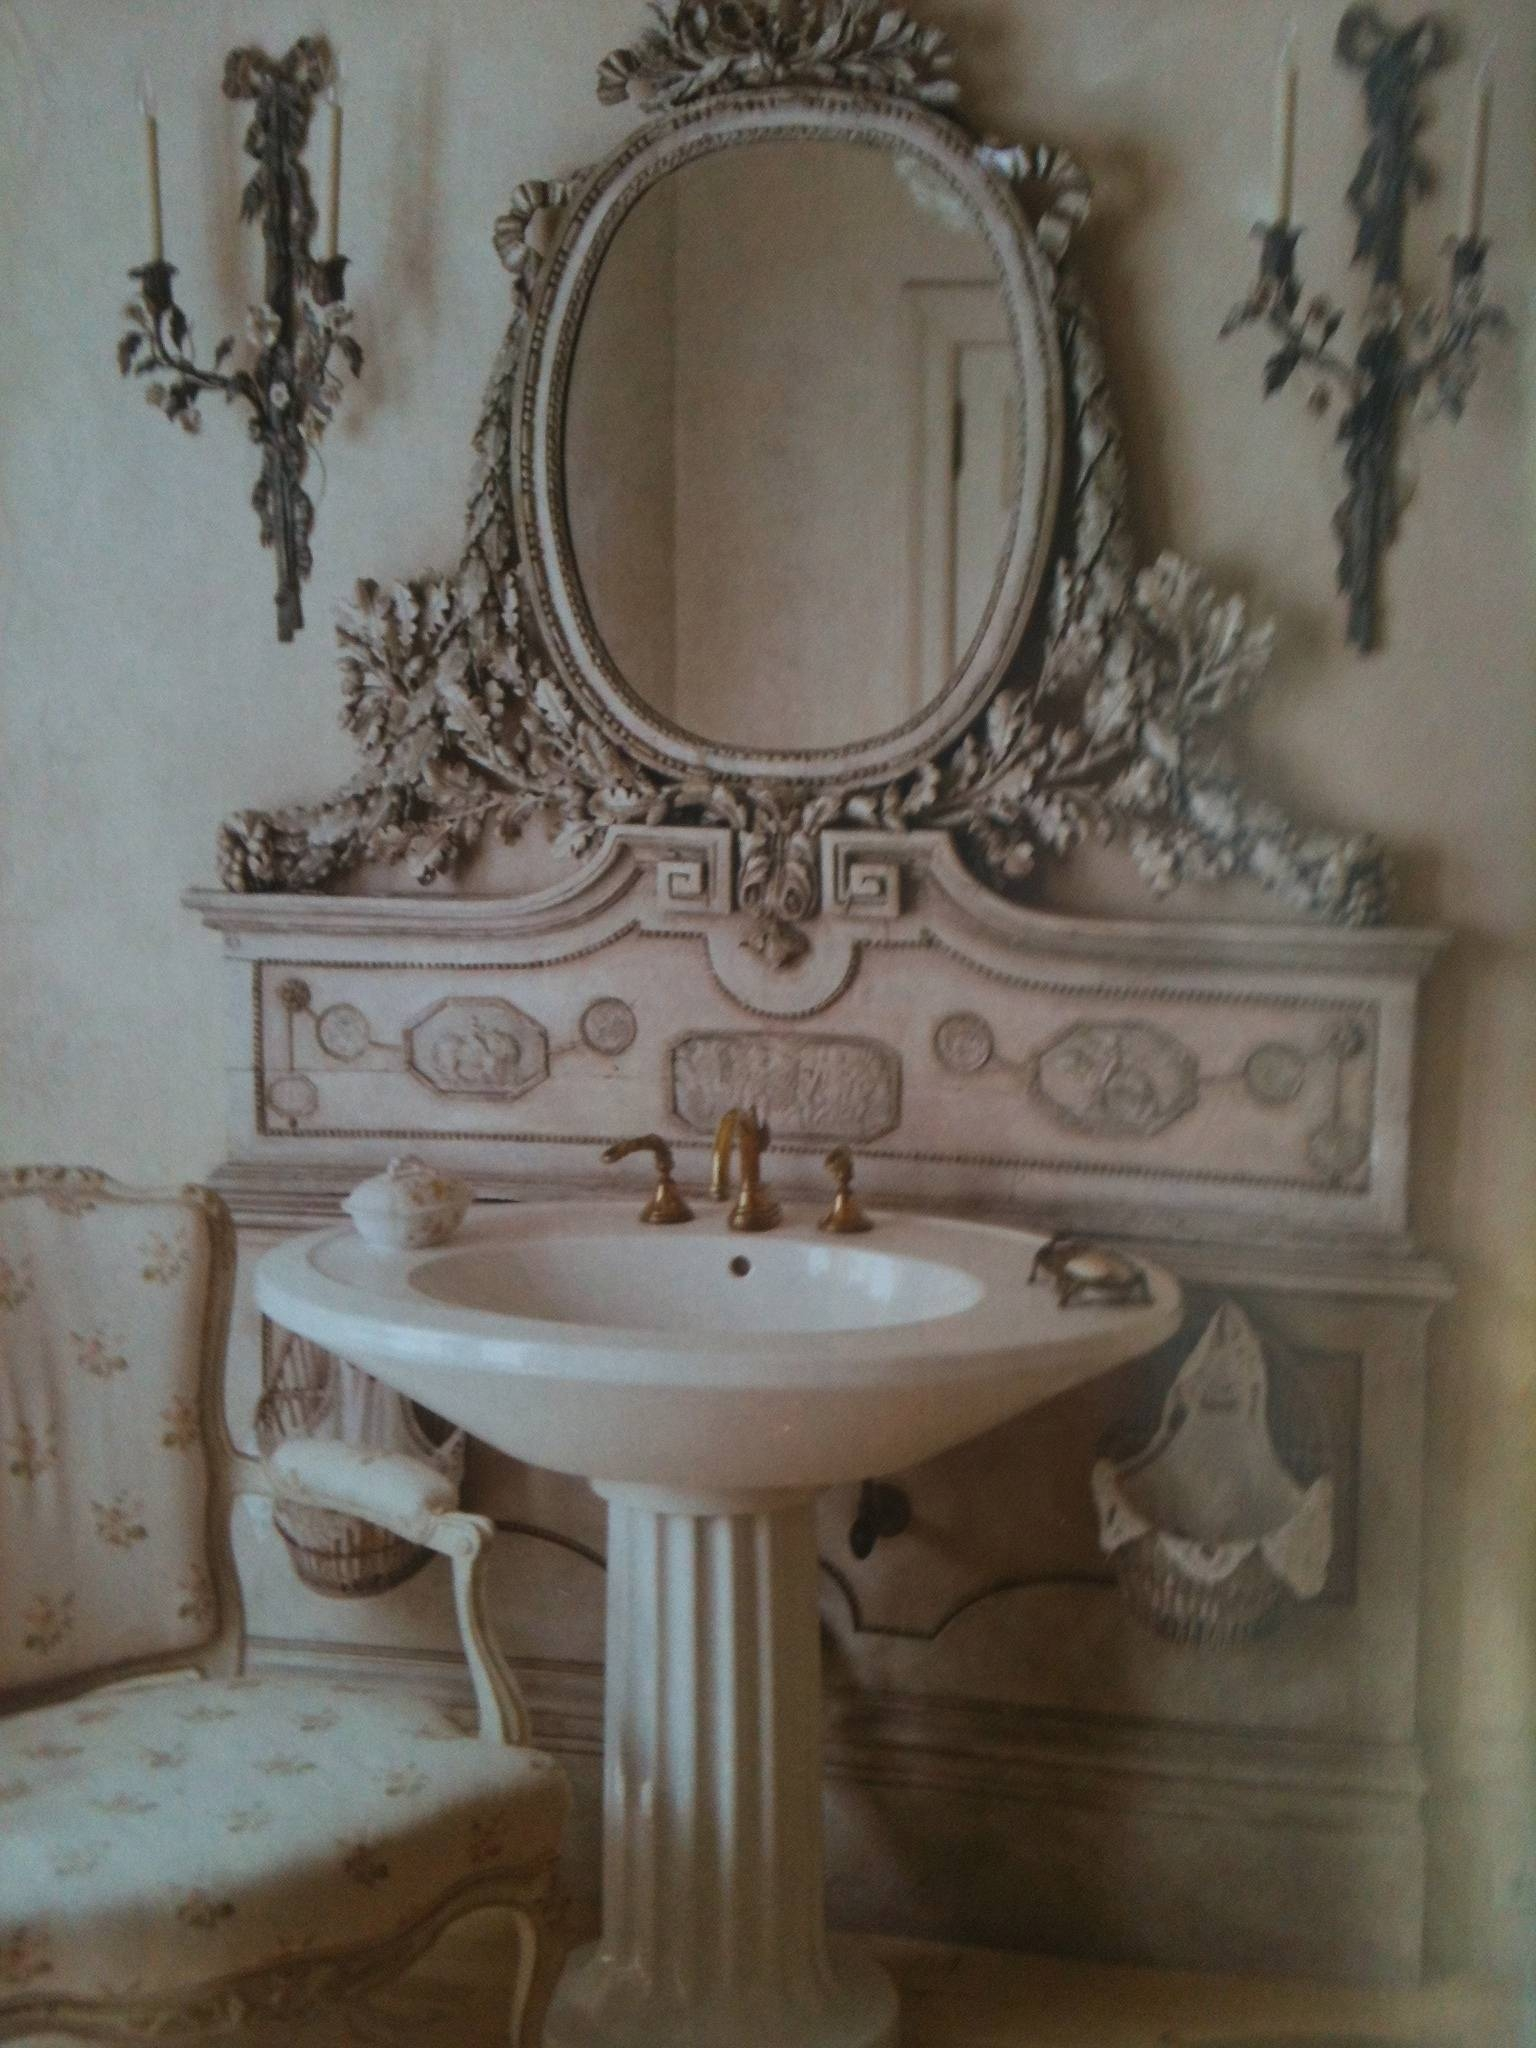 Chic Design Shabby Bathroom Mirror White Baroque Large Vintage Pertaining To Shabby Chic Bathroom Mirrors (View 4 of 15)